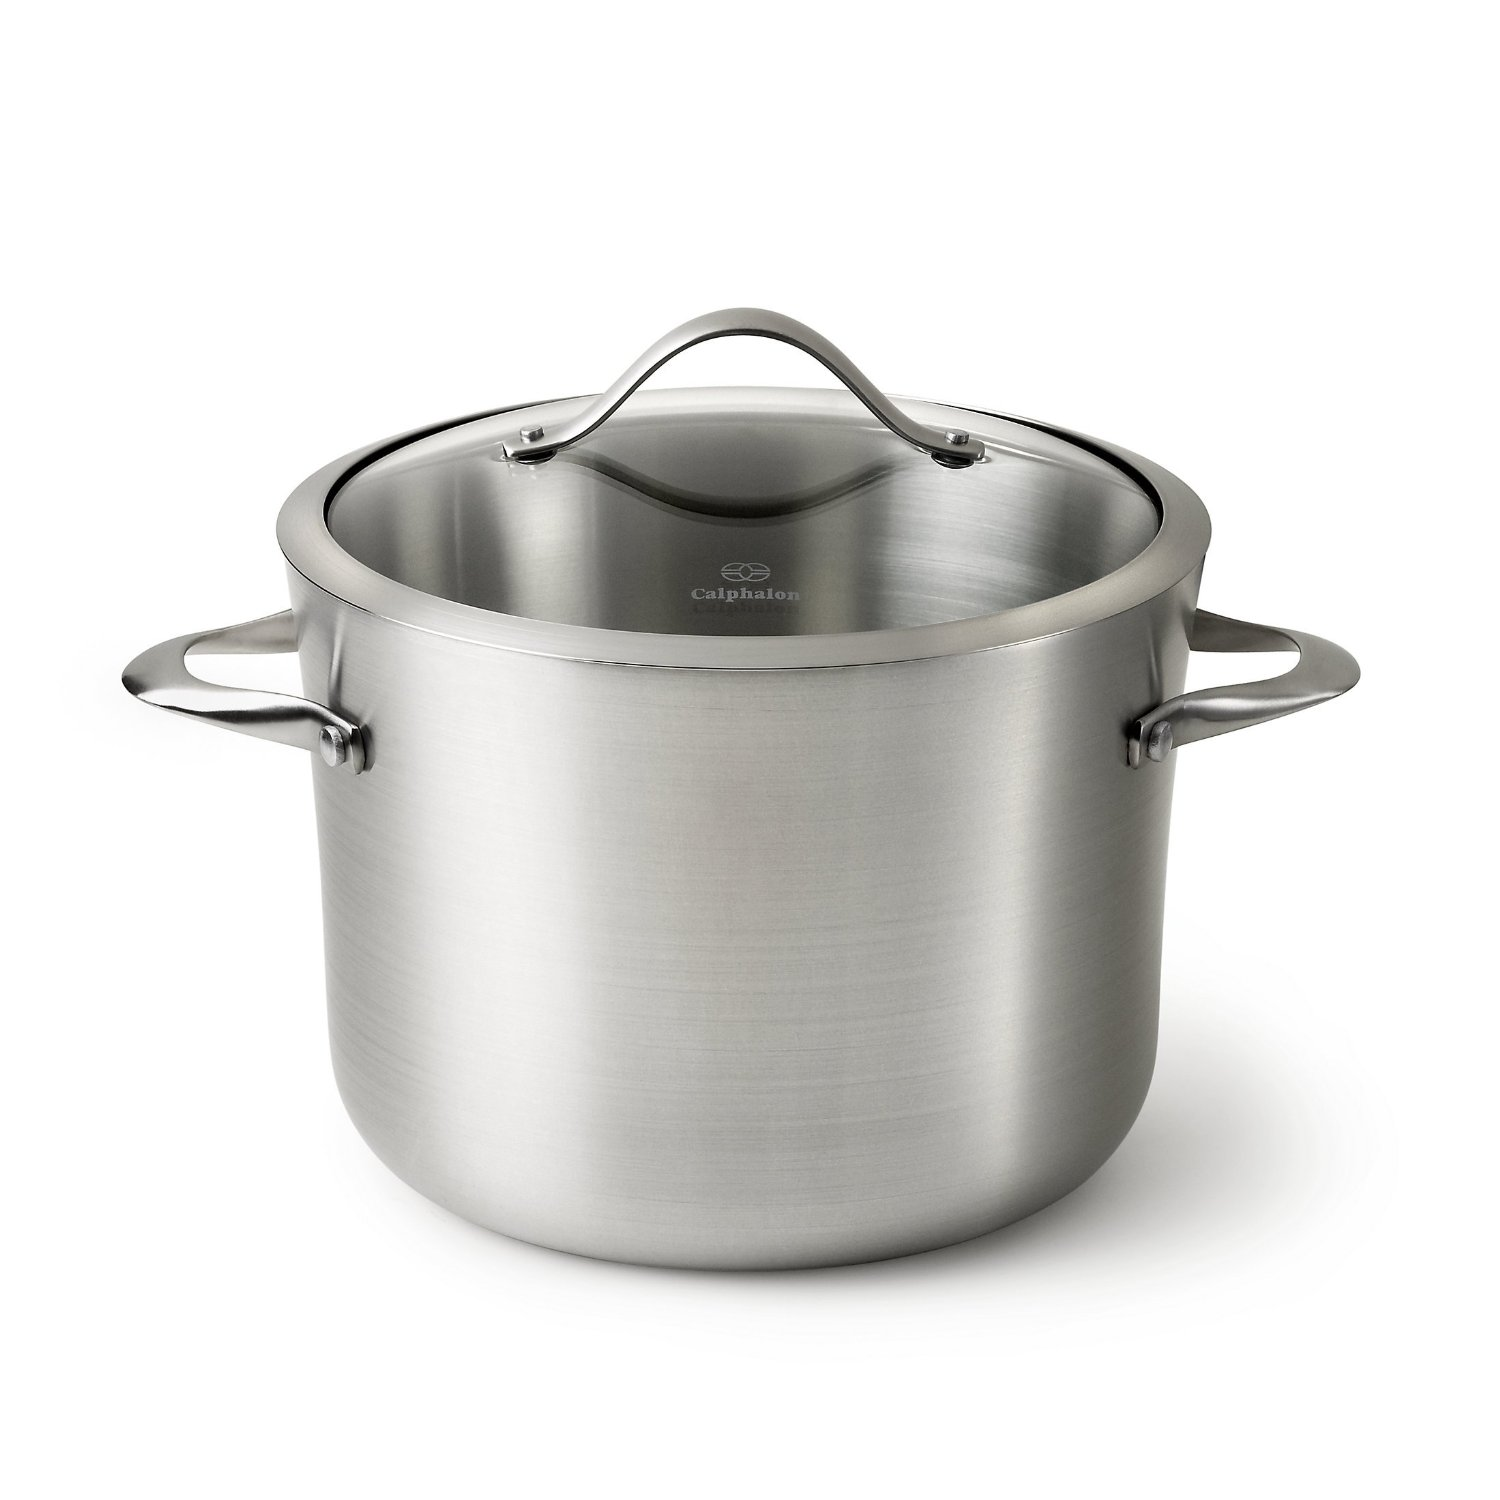 Calphalon Contemporary Stainless Review Too Expensive